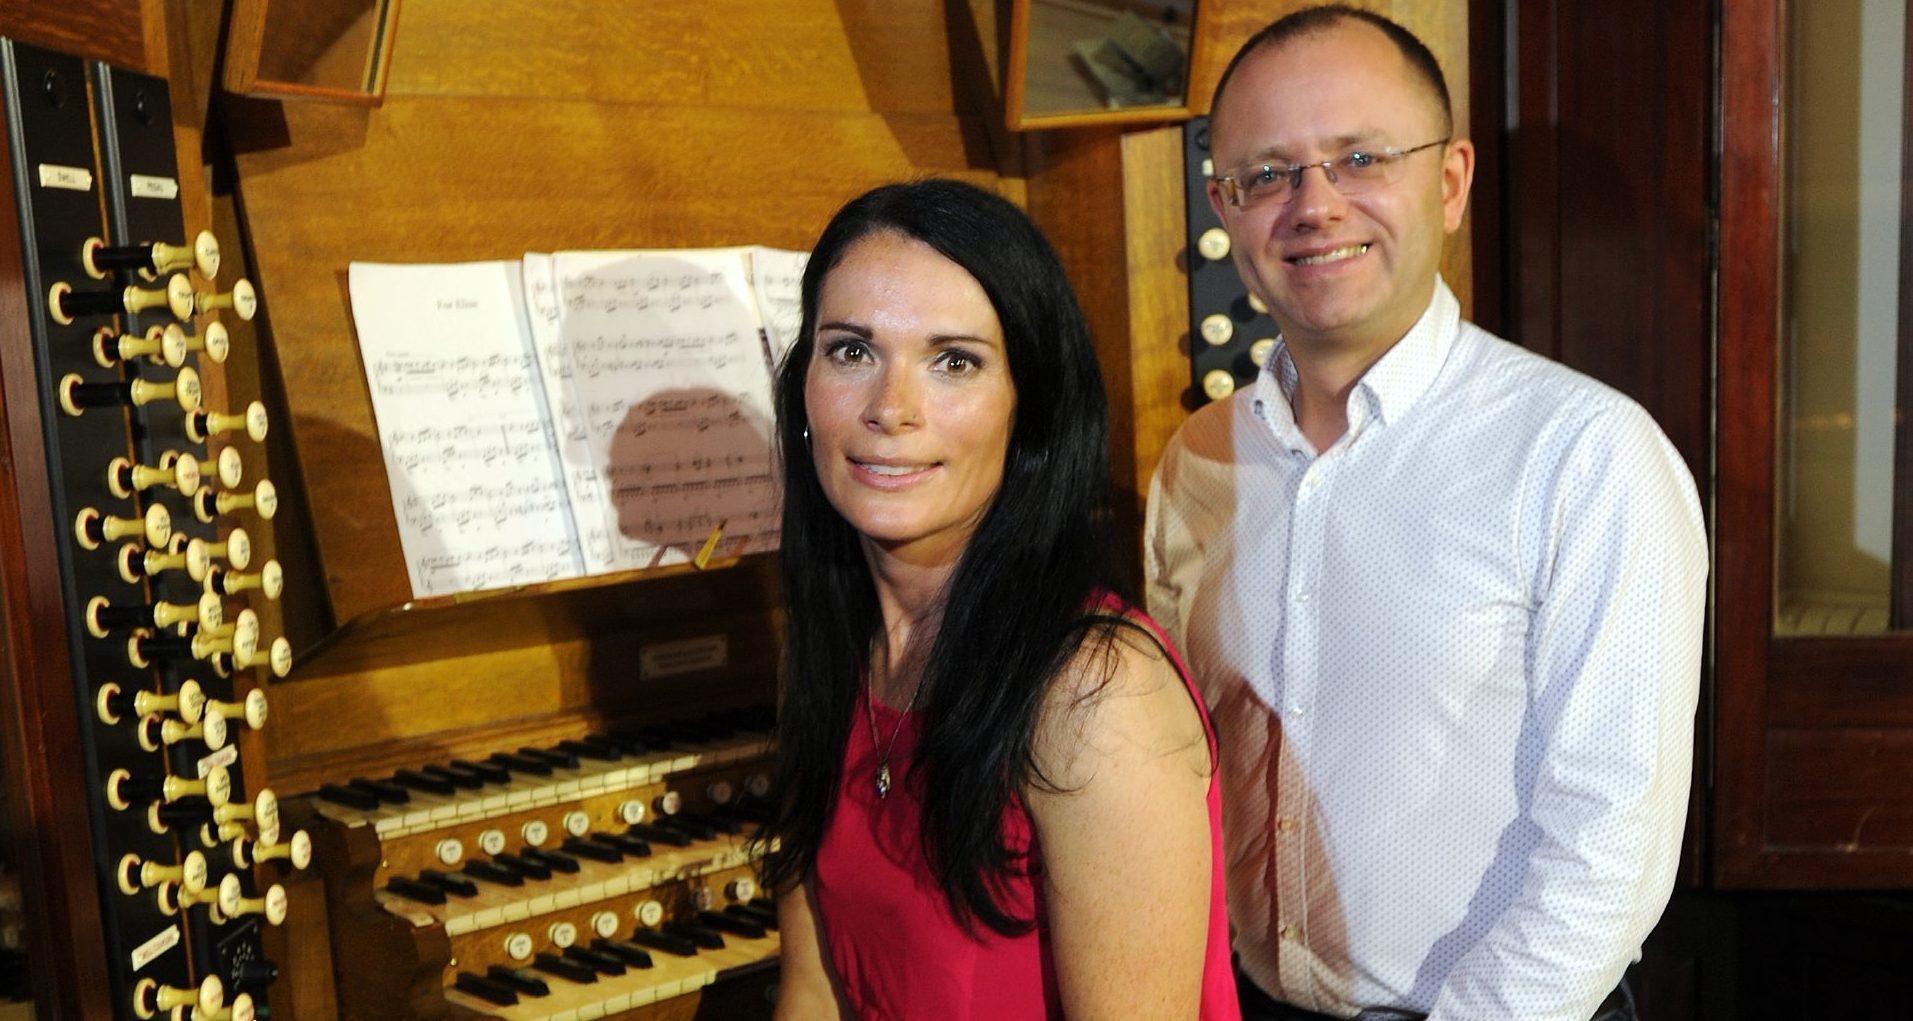 Gayle Ritchie and City Organist Stuart Muir sitting at the Caird Hall organ.